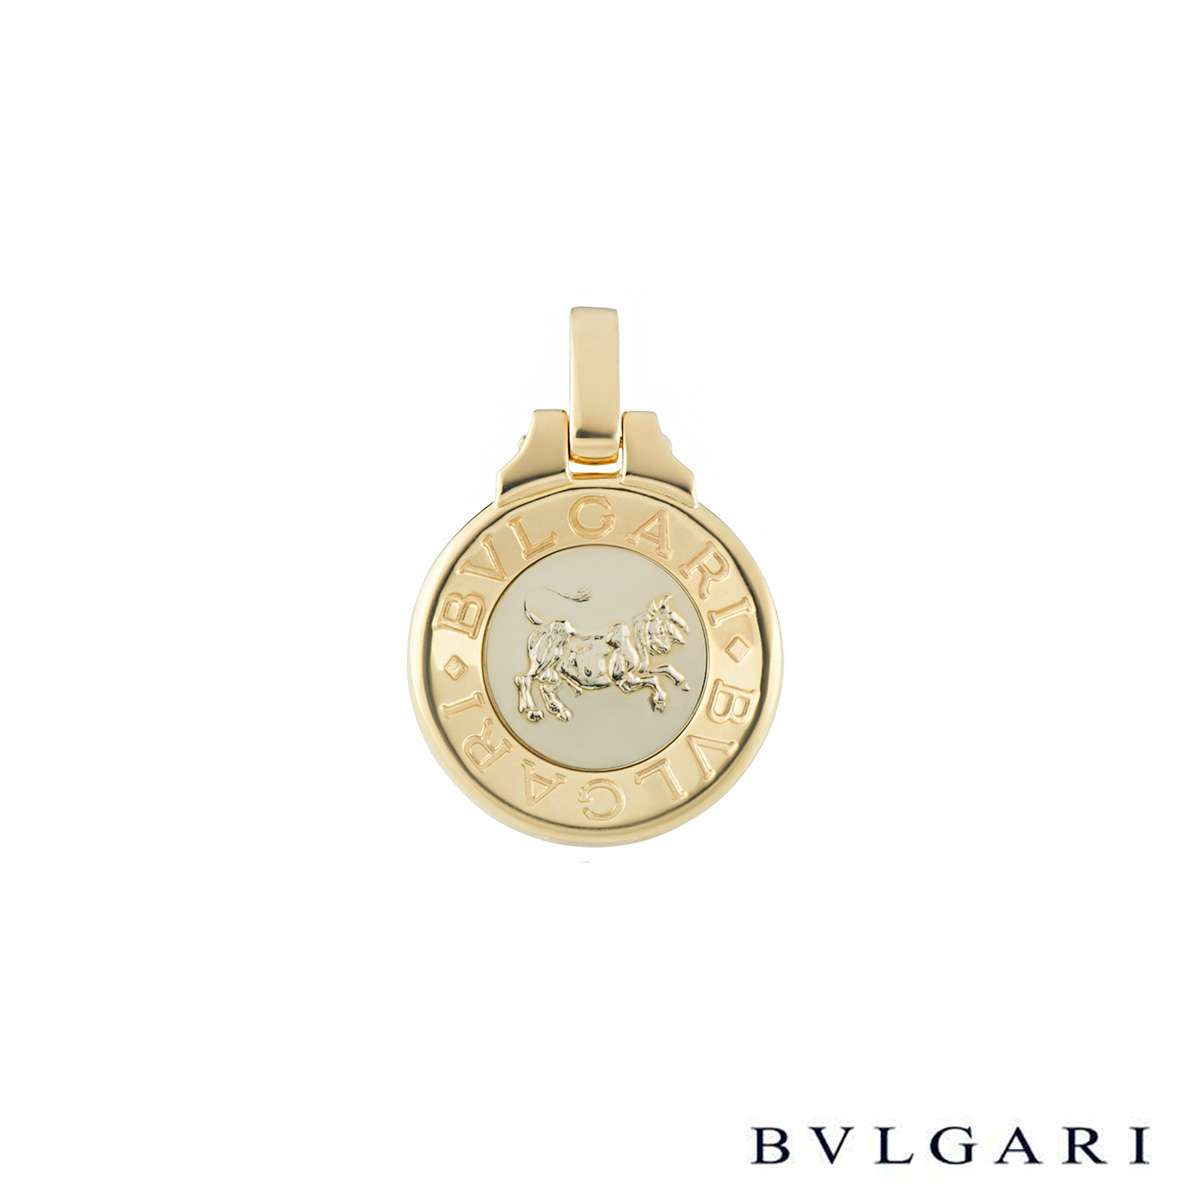 Bvlgari White and Yellow Gold Taurus Zodiac Pendant